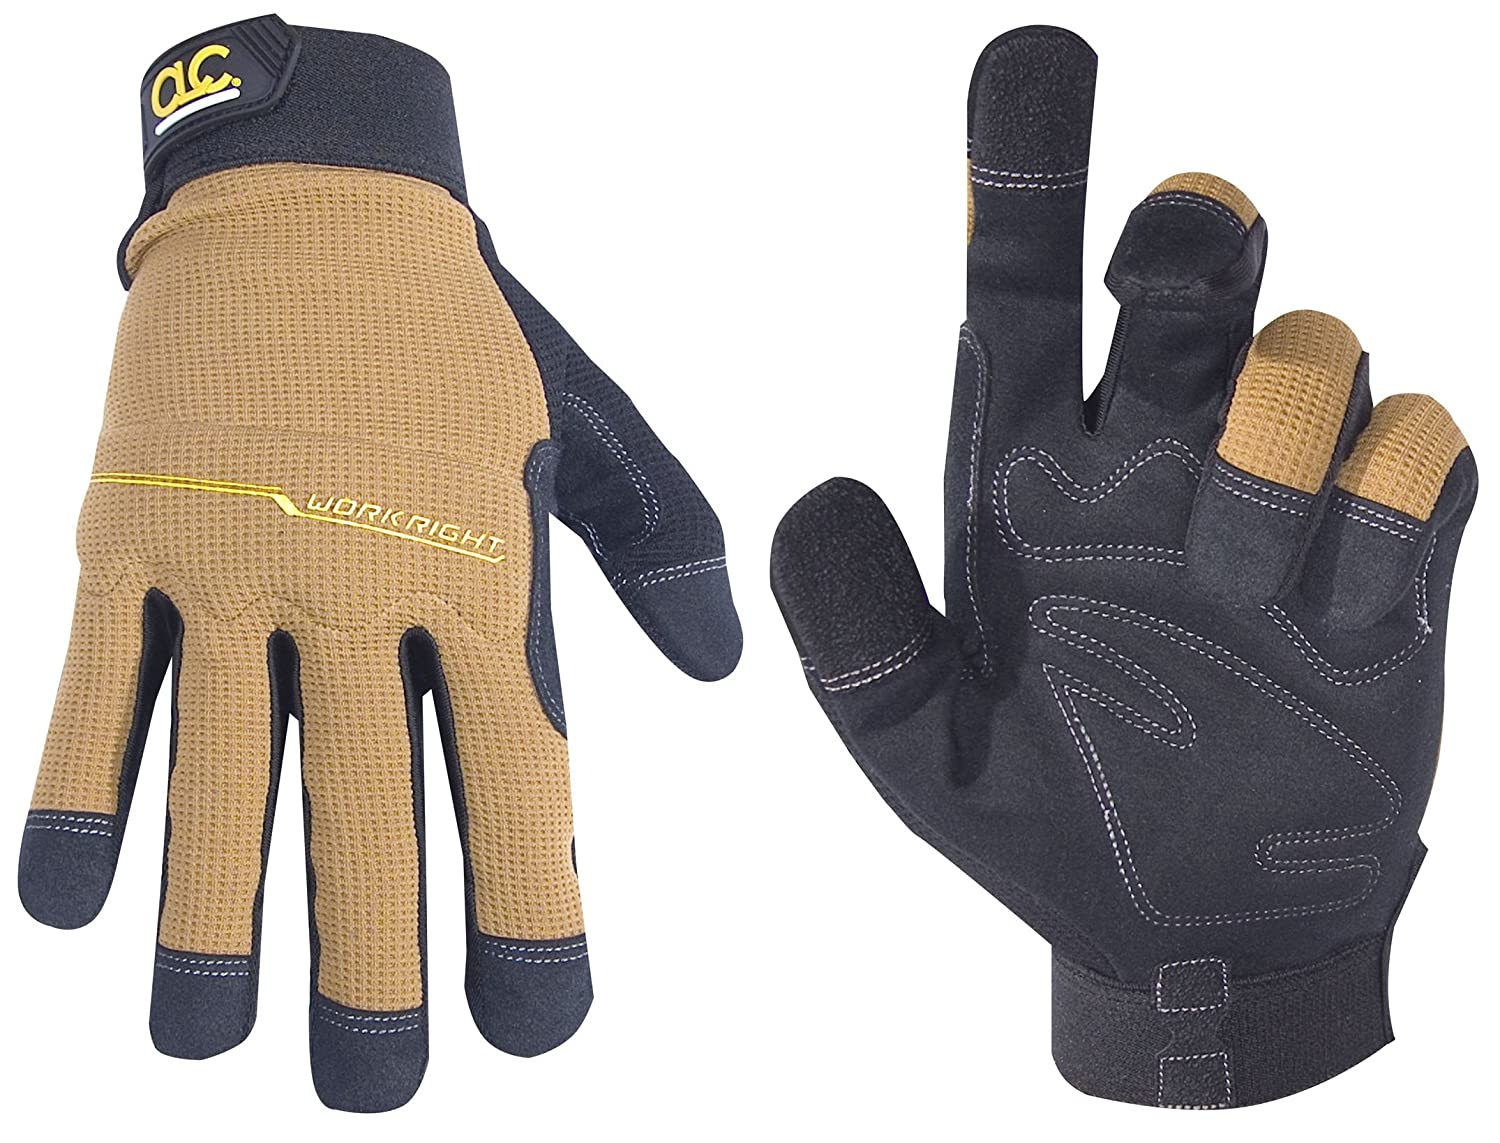 Insulated leather work gloves amazon - Custom Leathercraft 124l Workright Flex Grip Work Gloves Shrink Resistant Improved Dexterity Tough Stretchable Excellent Grip